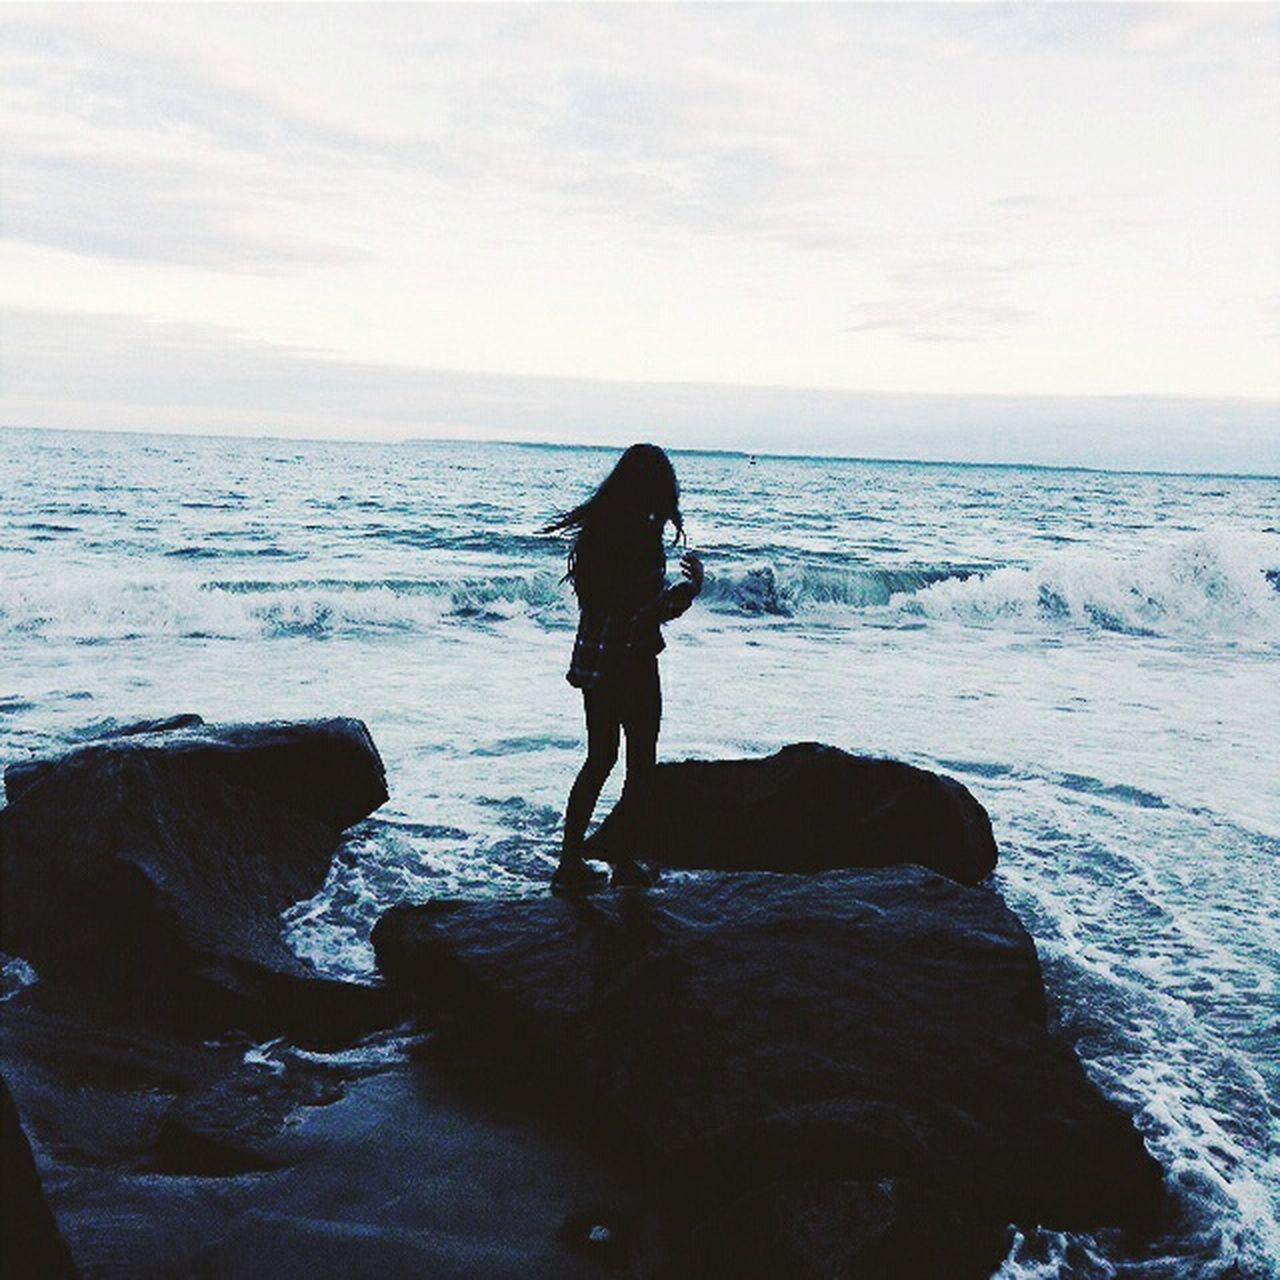 sea, horizon over water, water, one person, beach, nature, tranquil scene, beauty in nature, real people, scenics, rock - object, standing, sky, full length, tranquility, leisure activity, idyllic, silhouette, outdoors, lifestyles, women, wave, day, vacations, young women, young adult, people